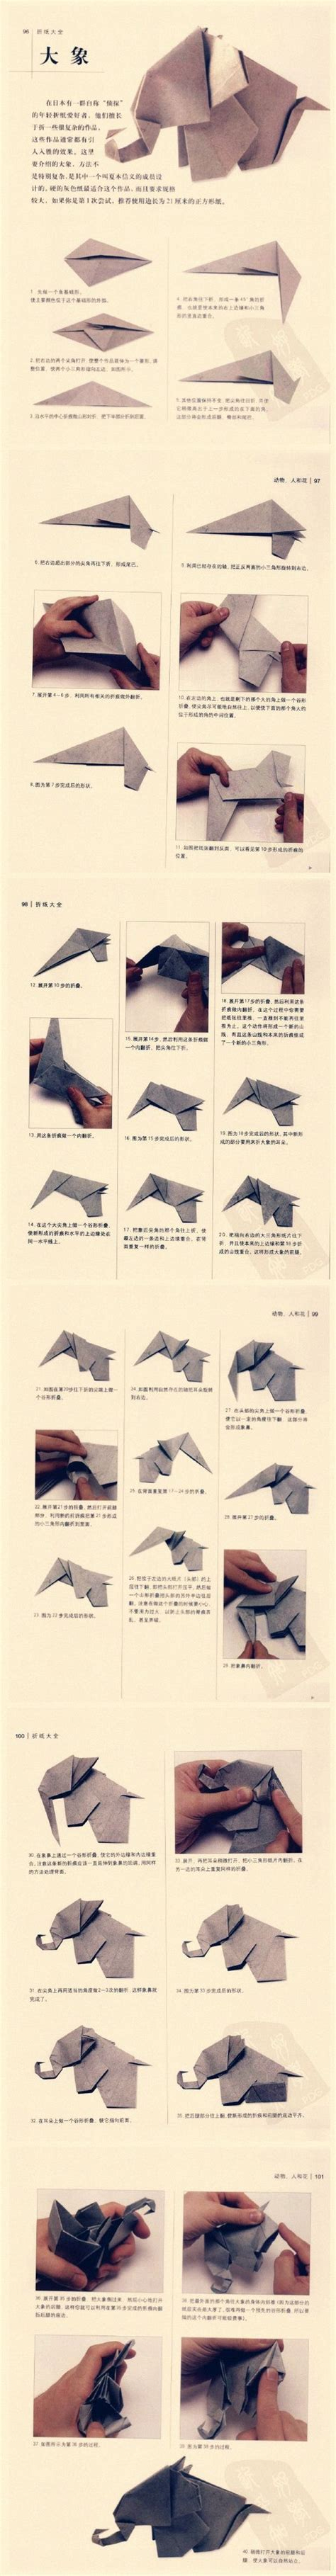 how to make a elephant origami origami elephant directions origami